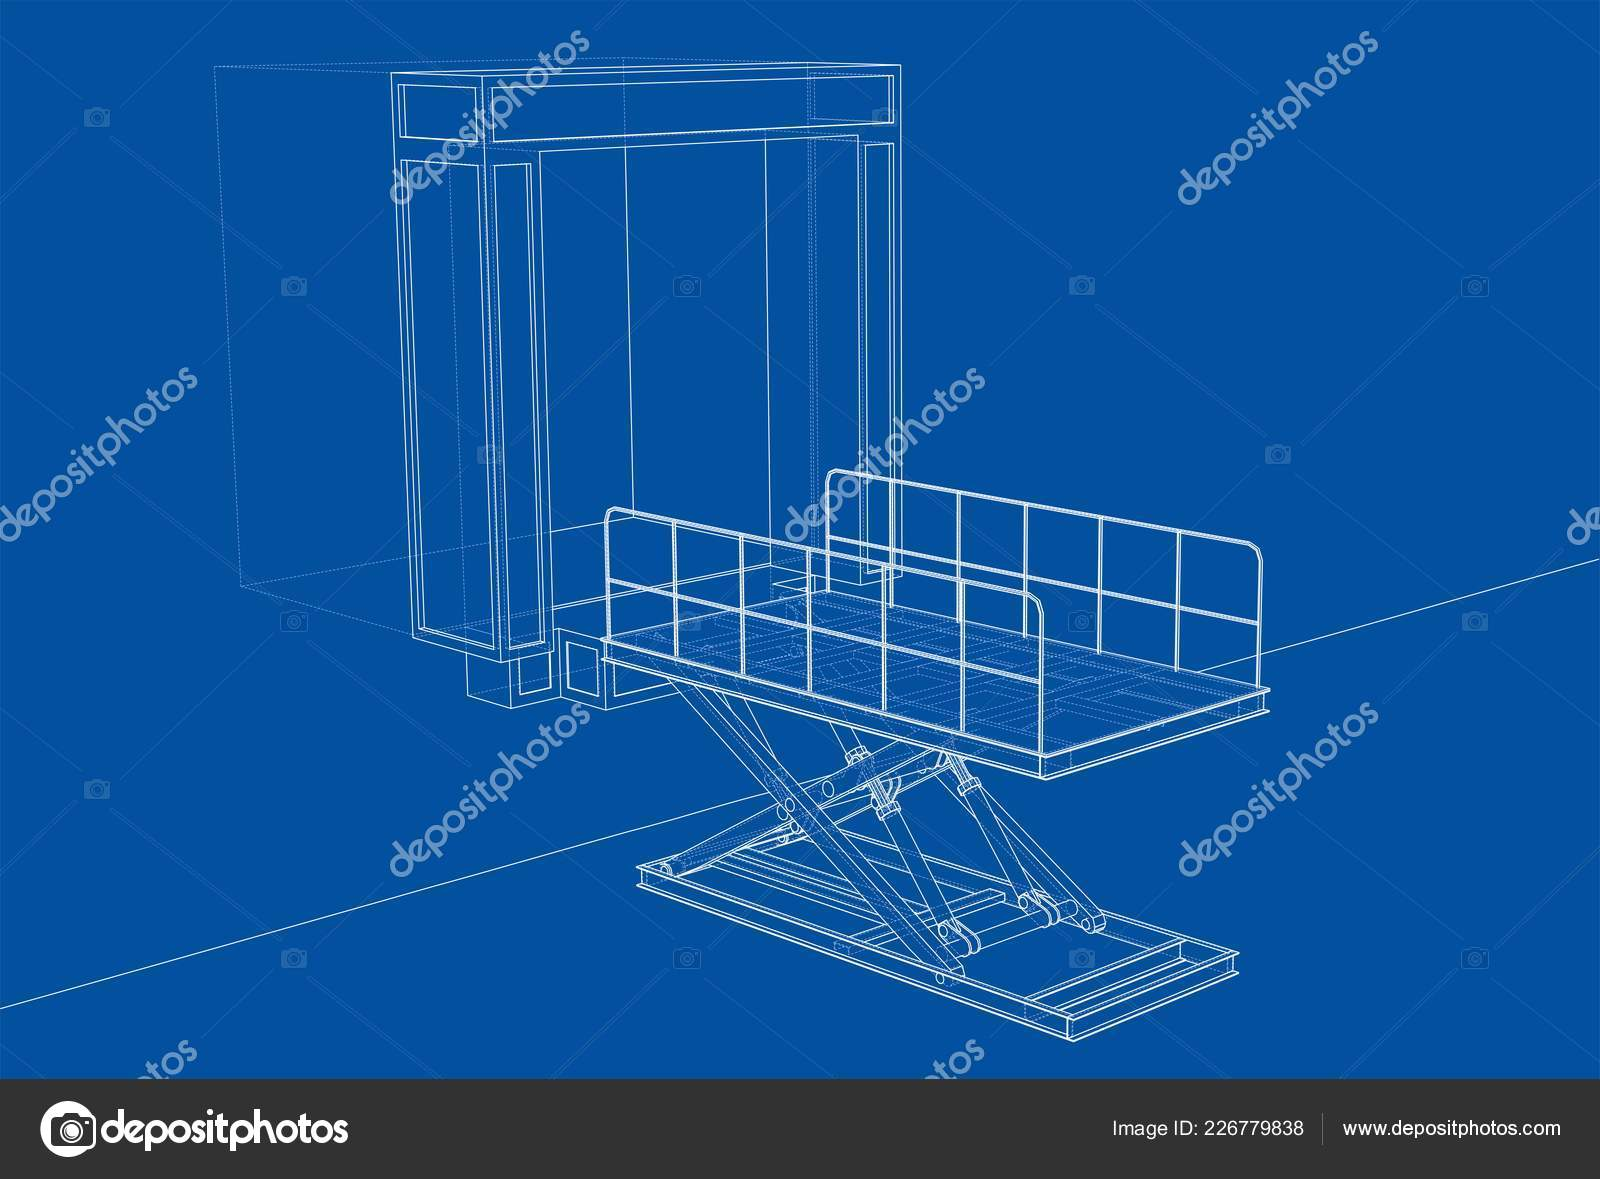 hight resolution of loading dock leveler wiring diagram wiring librarydock leveler concept vector rendering of 3d wire frame style